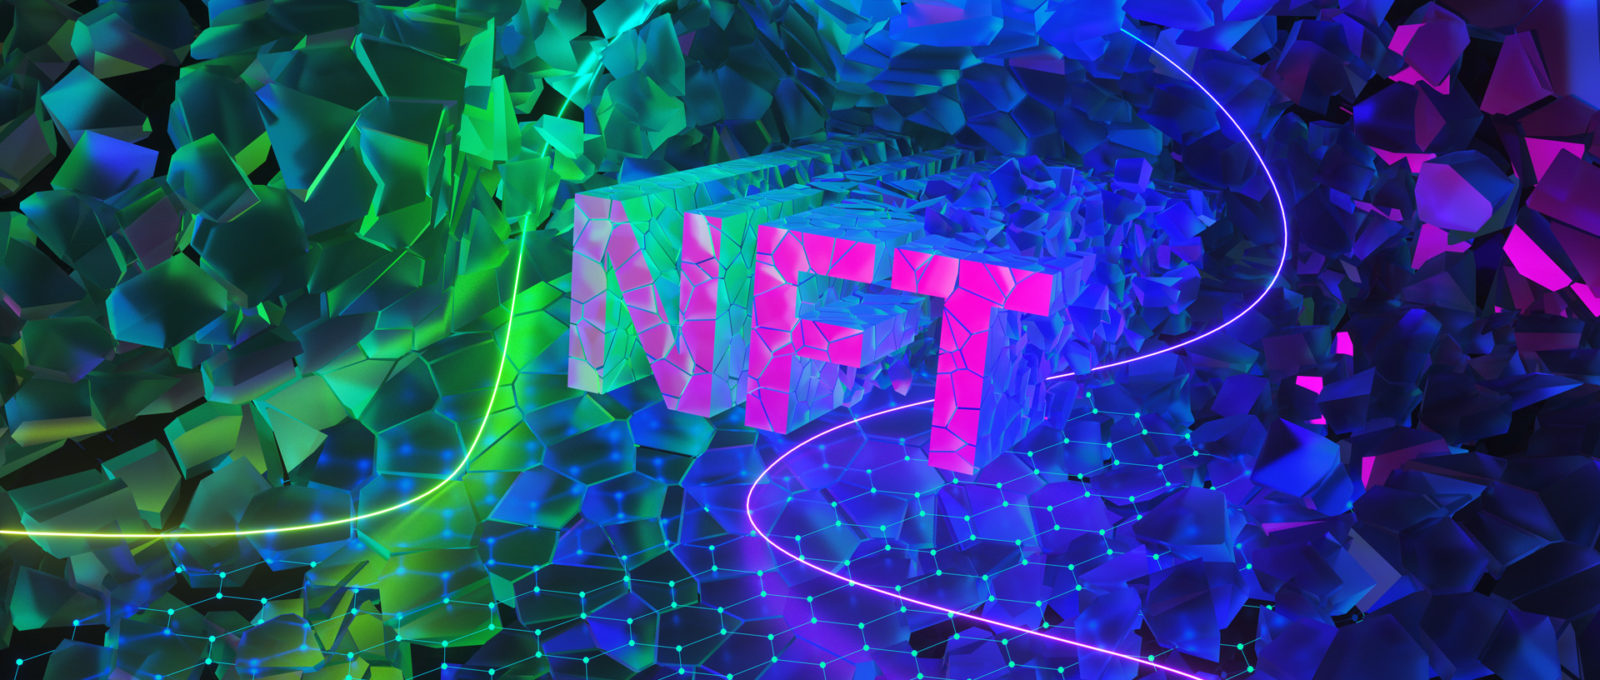 Nft Transaction Volume Sees First Dip Of 2021